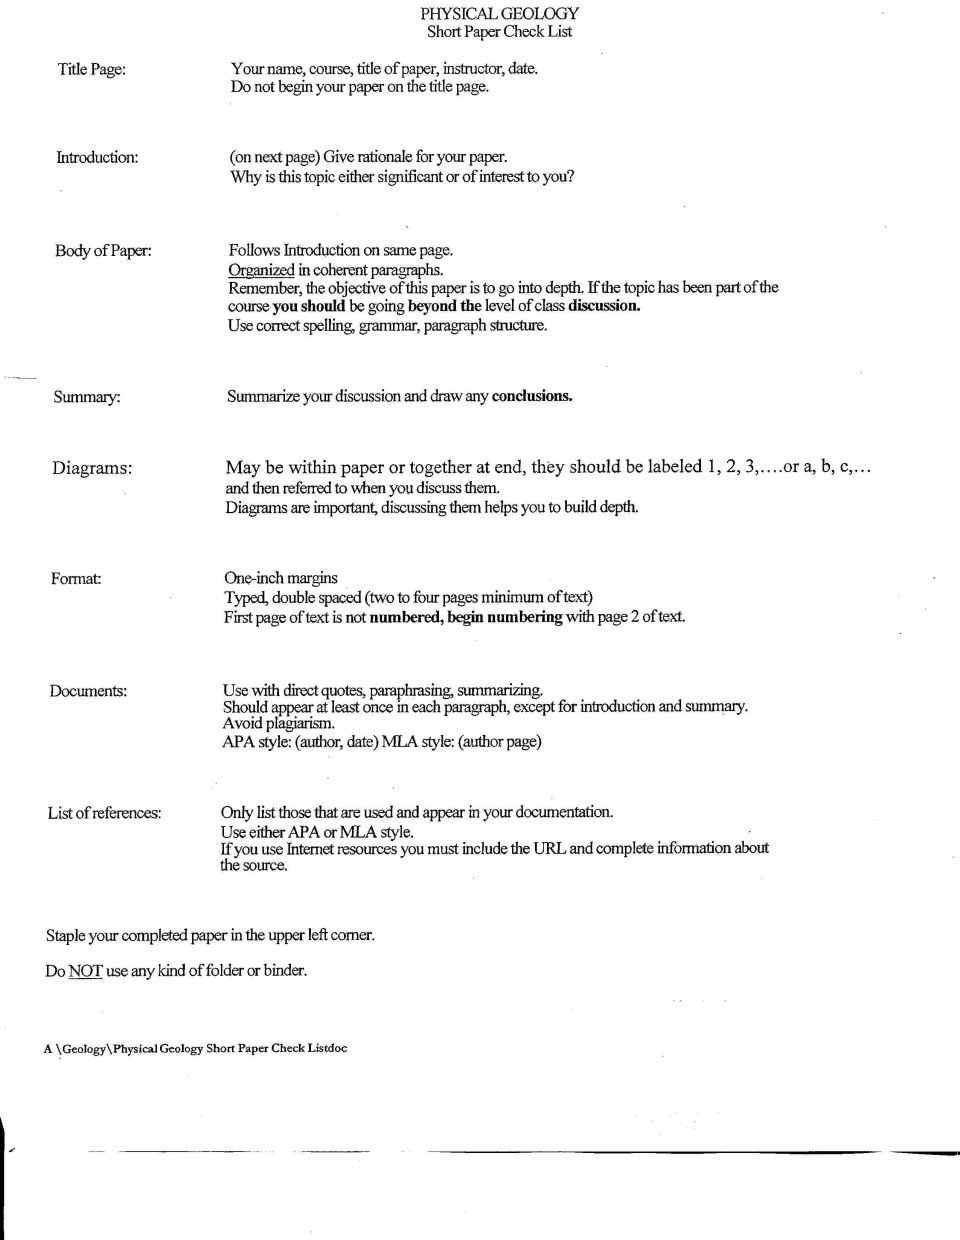 018 Topics In Research Paper Short Checklist Magnificent About Education English Psychology 960